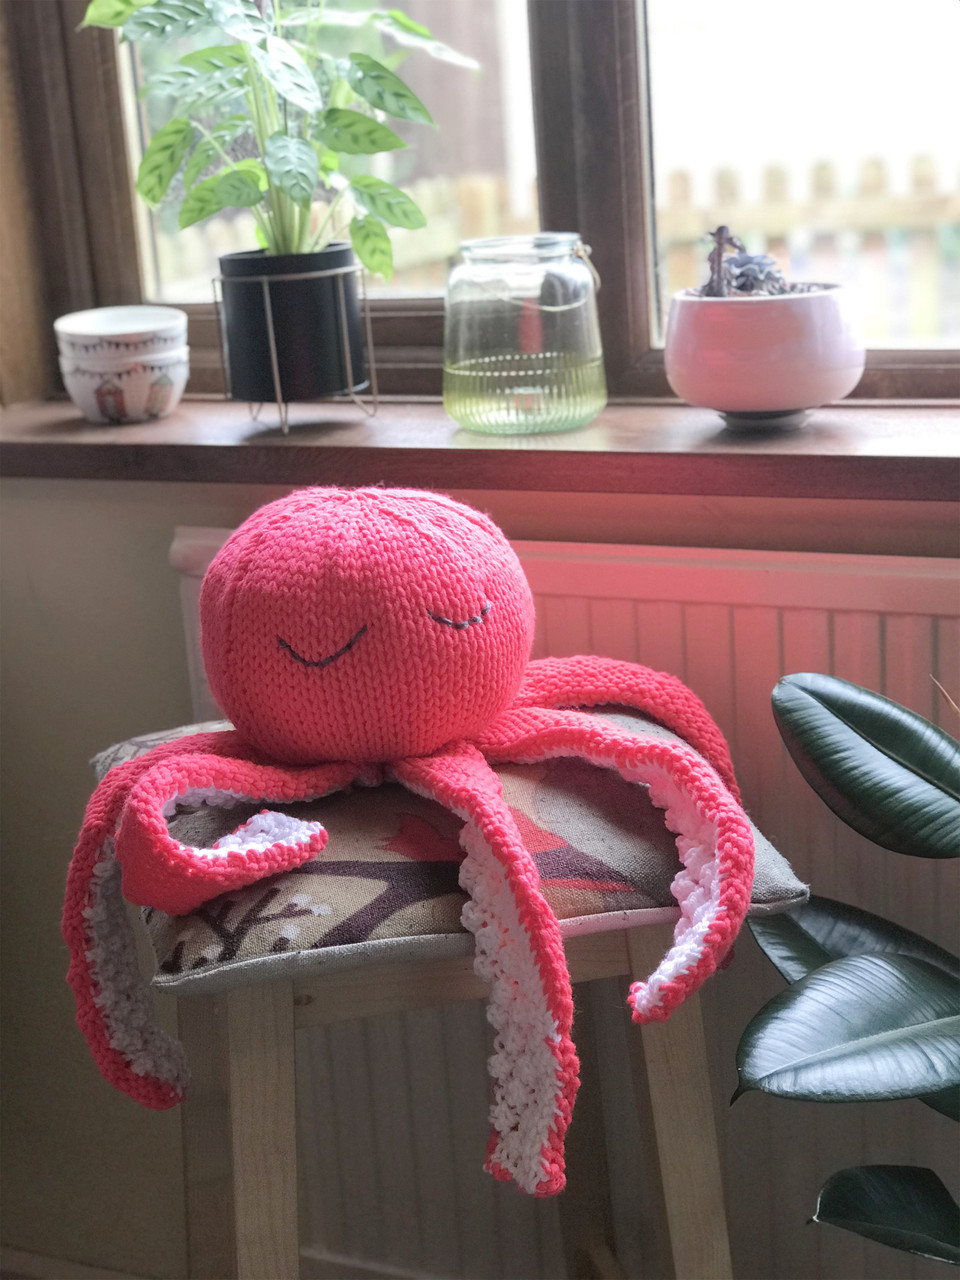 Octopus Knitting Pattern : octopus, knitting, pattern, Friendly, Octopus, Knitting, Pattern, Horse